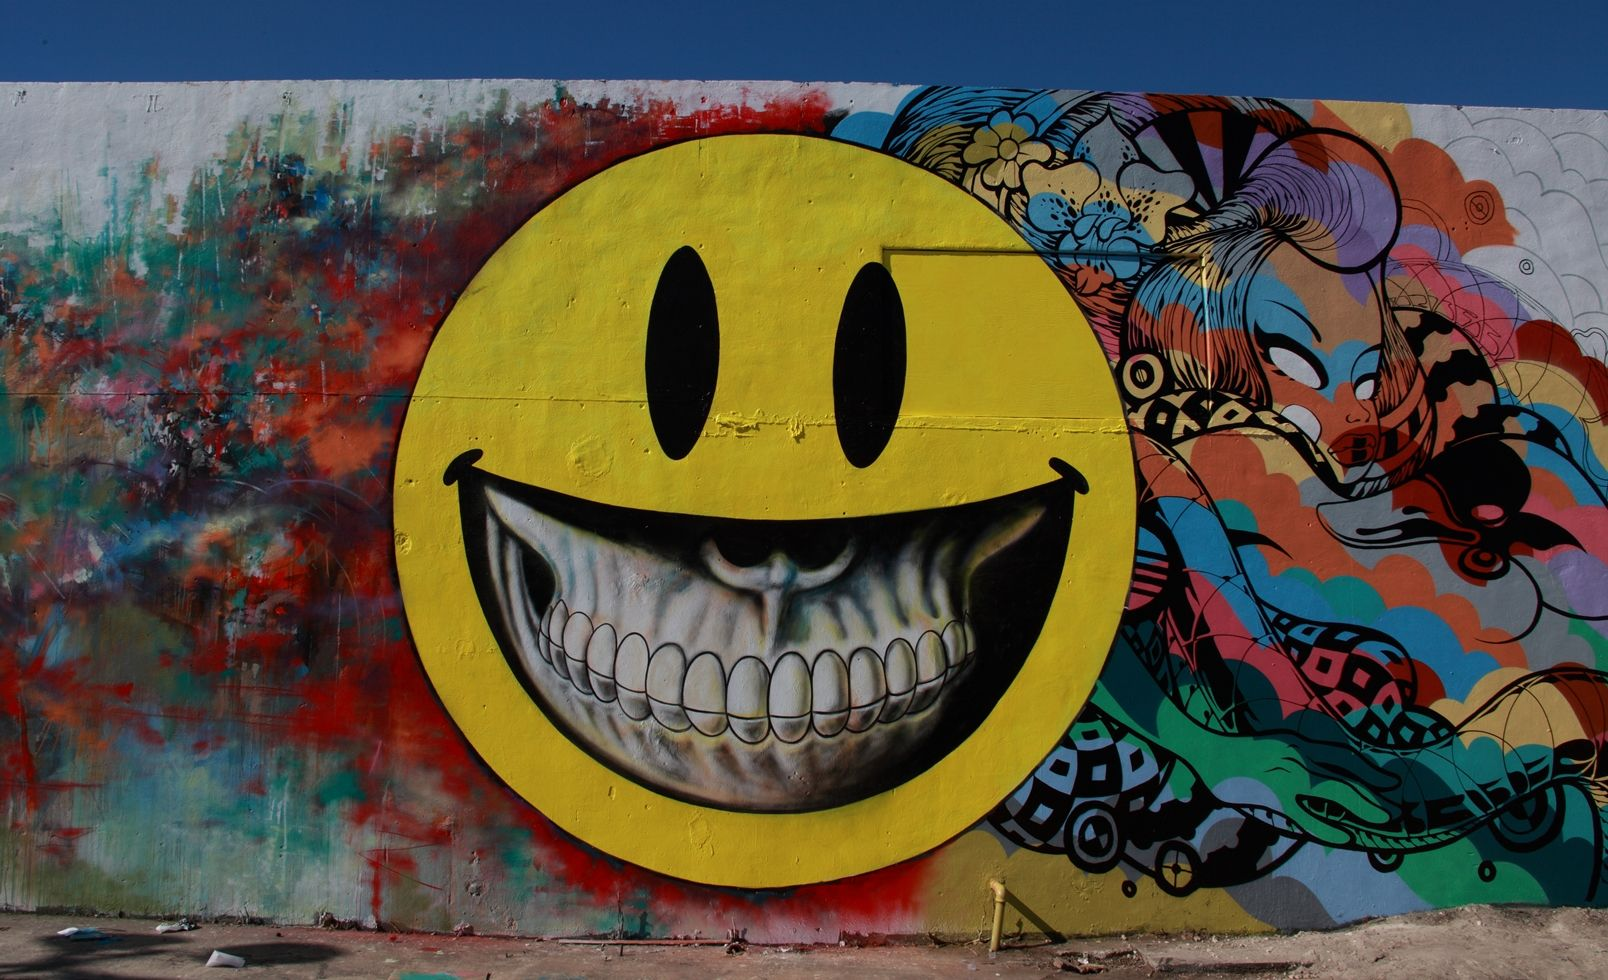 ron english | Some Amazing Street Art | Pinterest | Street art, Pop ...